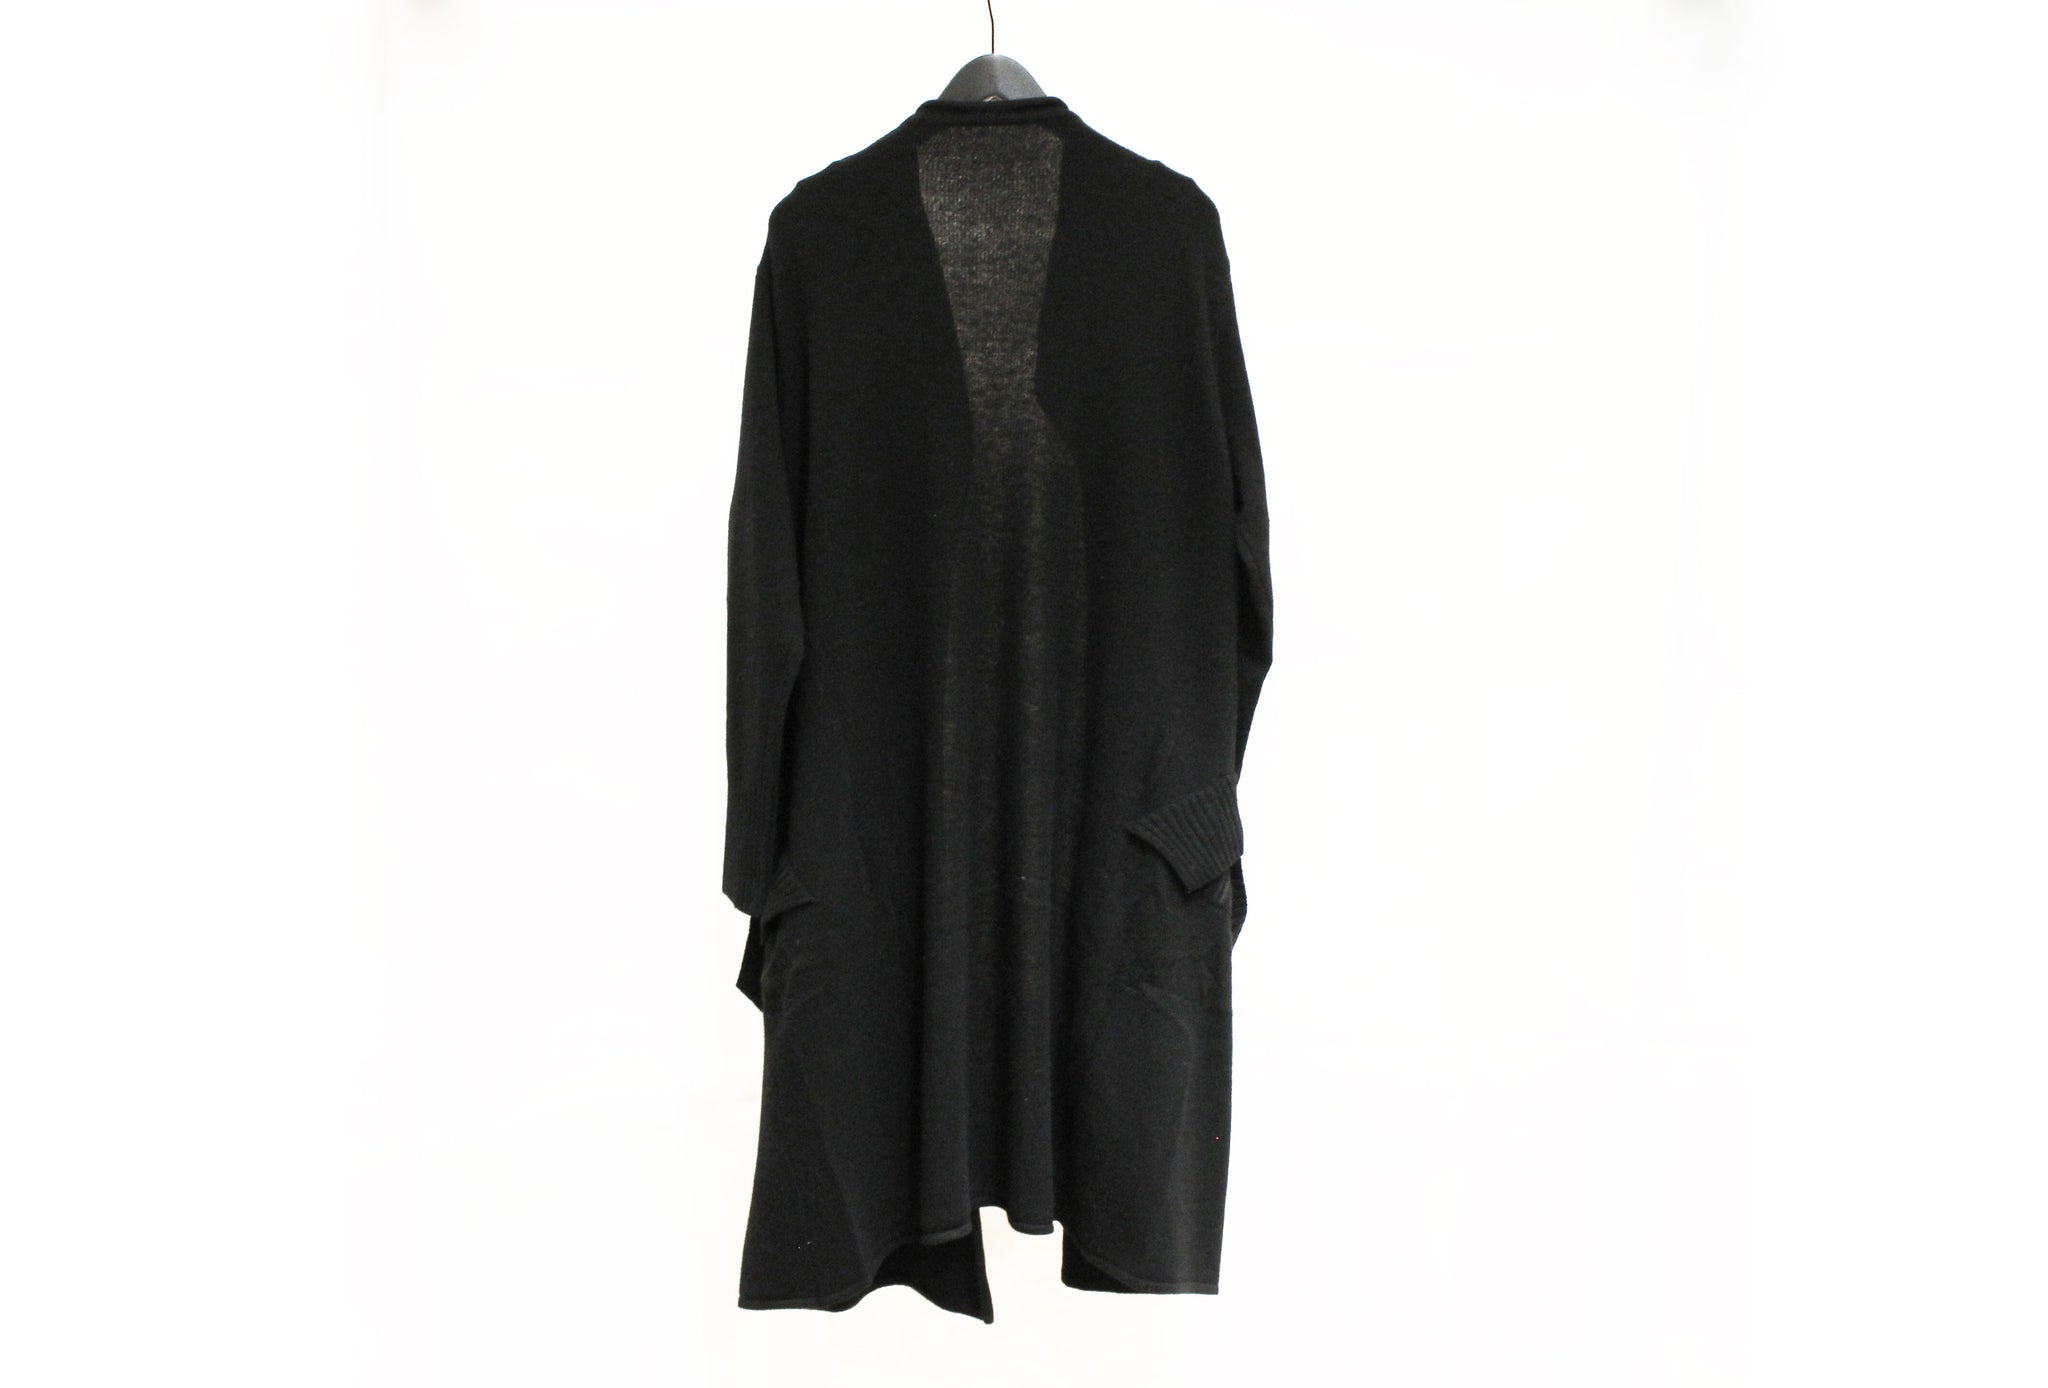 Moyuru Black Long Cardigan